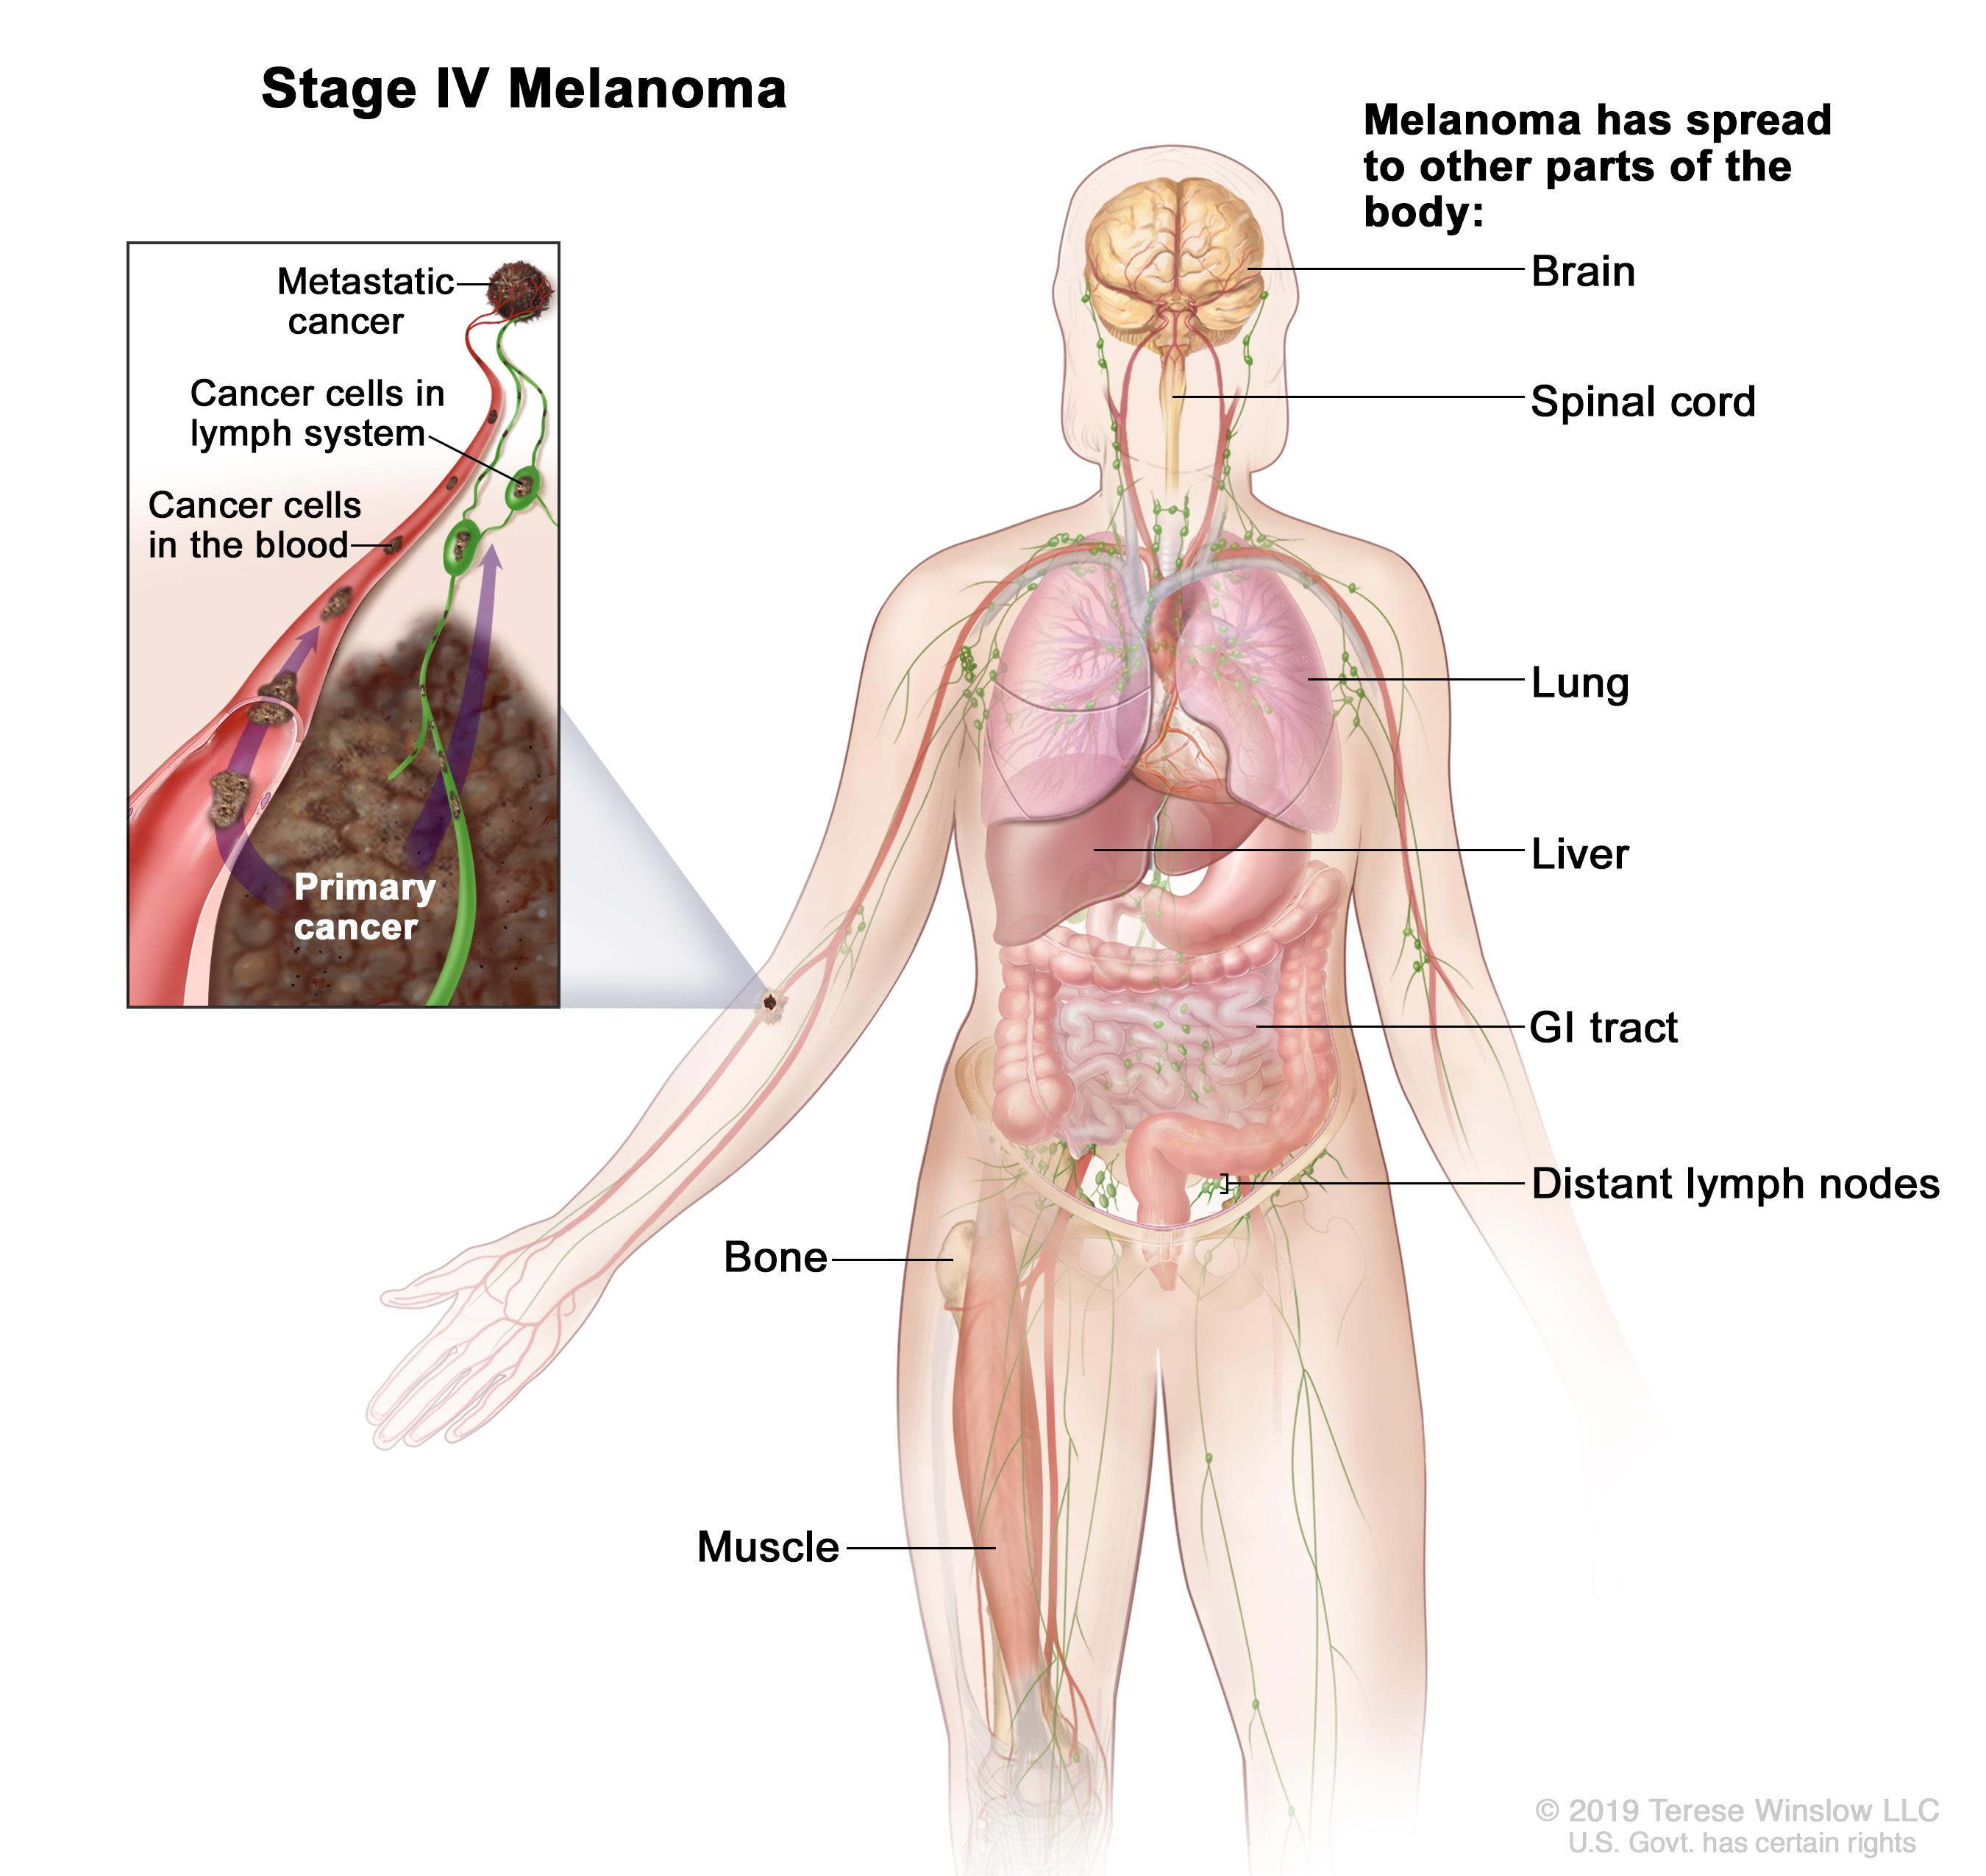 Stage IV melanoma; drawing shows other parts of the body where melanoma may spread, including the brain, lung, liver, lymph nodes, small intestine, and bone. An inset shows cancer cells spreading through the blood and lymph system to another part of the body where metastatic cancer has formed.